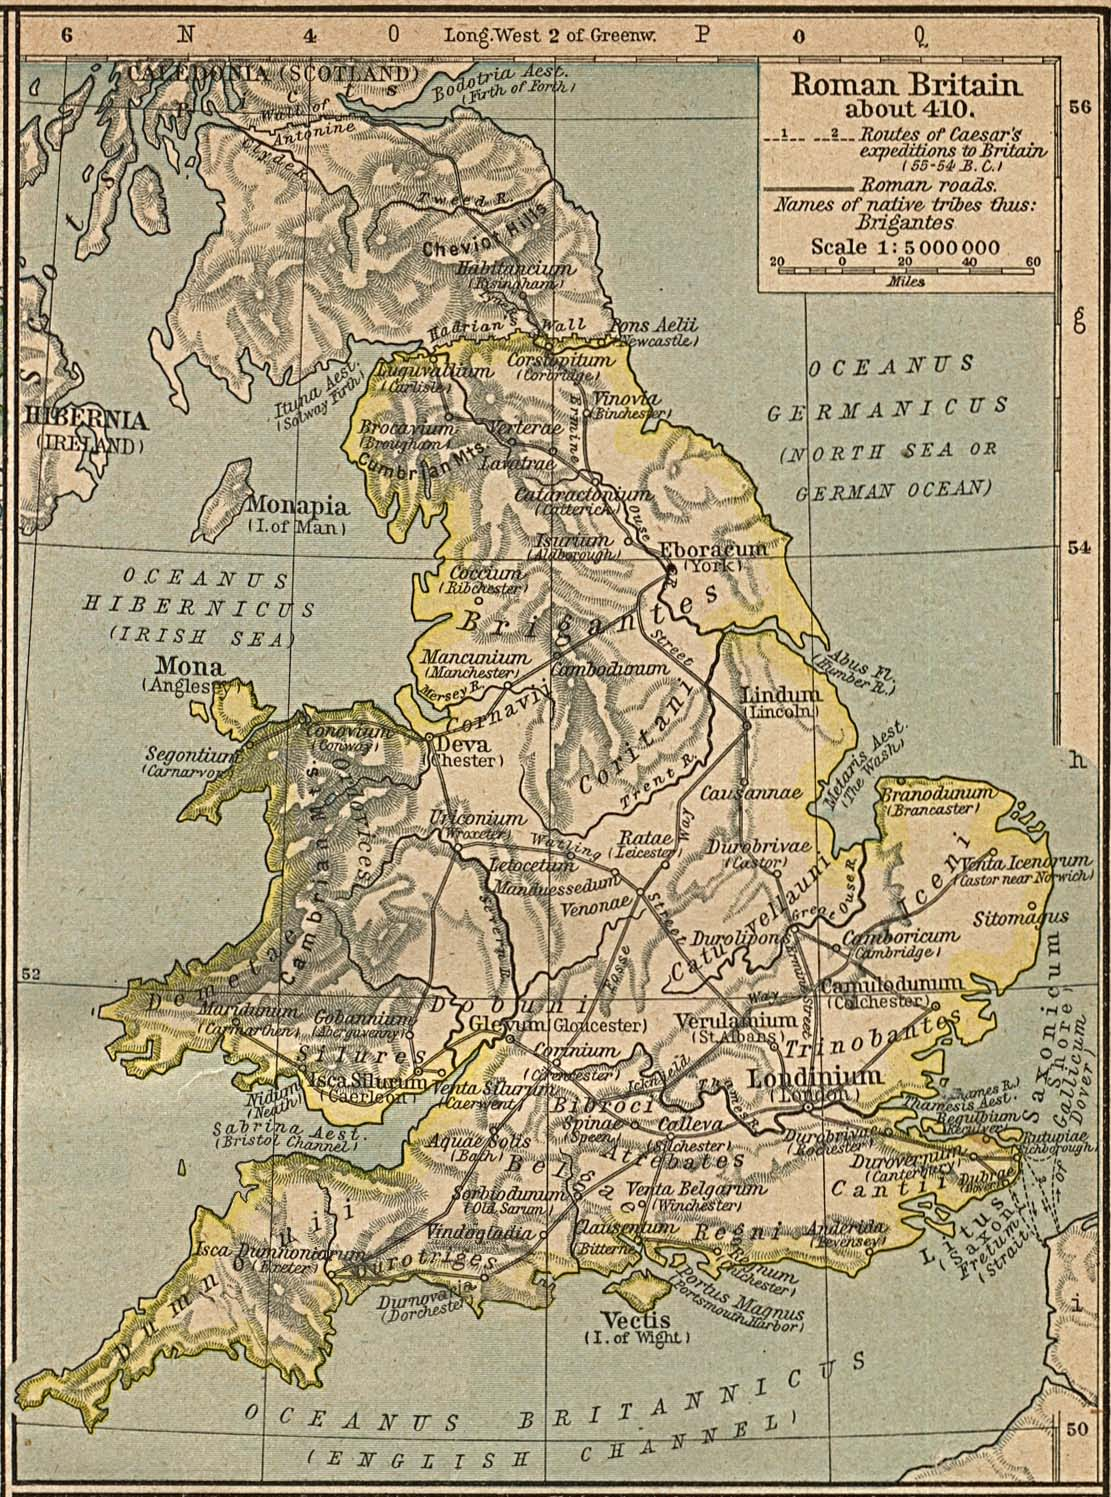 roman britain Roman britain: the romans ruled britain for more than 300 years in 55 bc the roman general julius caesar led his army across the sea from gaul to britain.